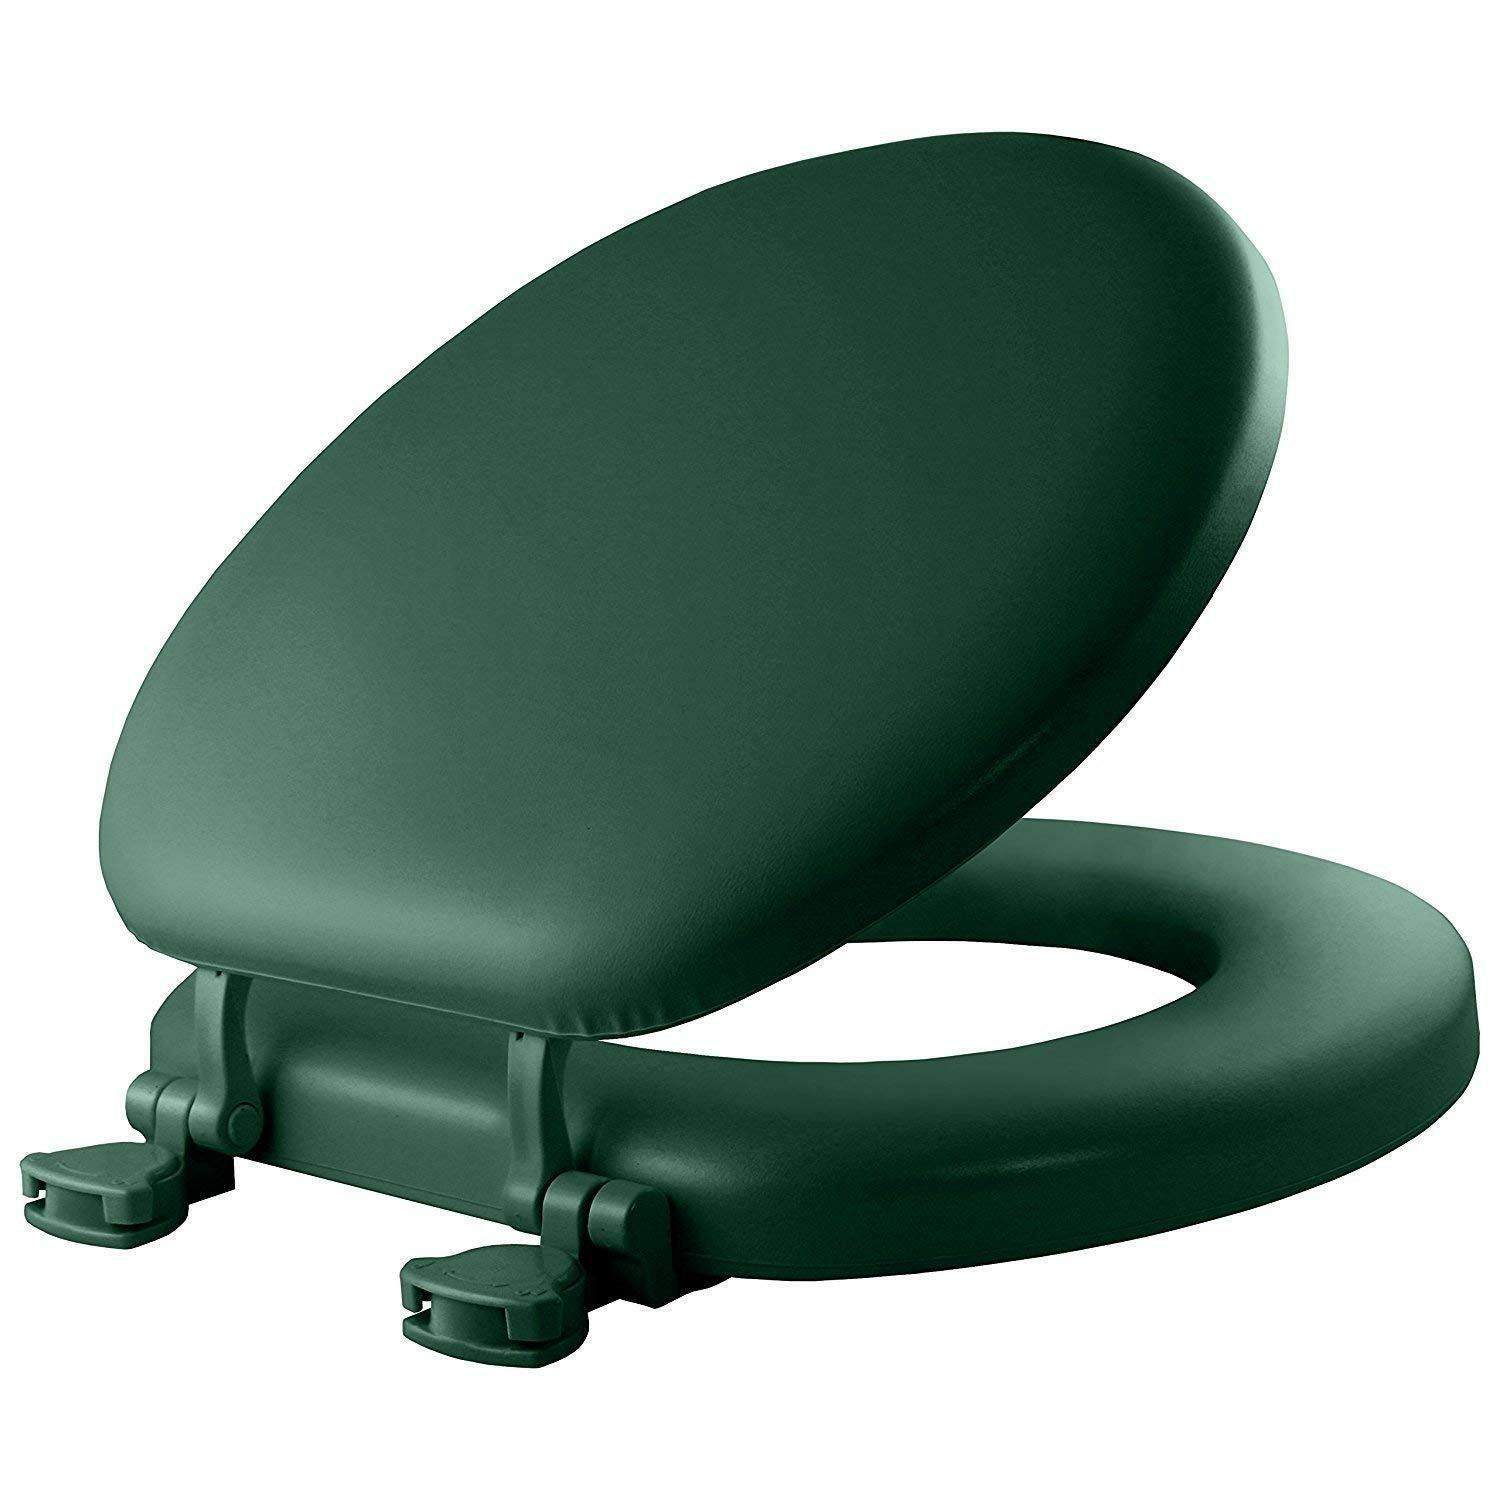 Moon Daughter Closed Front Dark Green Soft Padded Toilet Seat Cushioned Standard Round Cover Seat